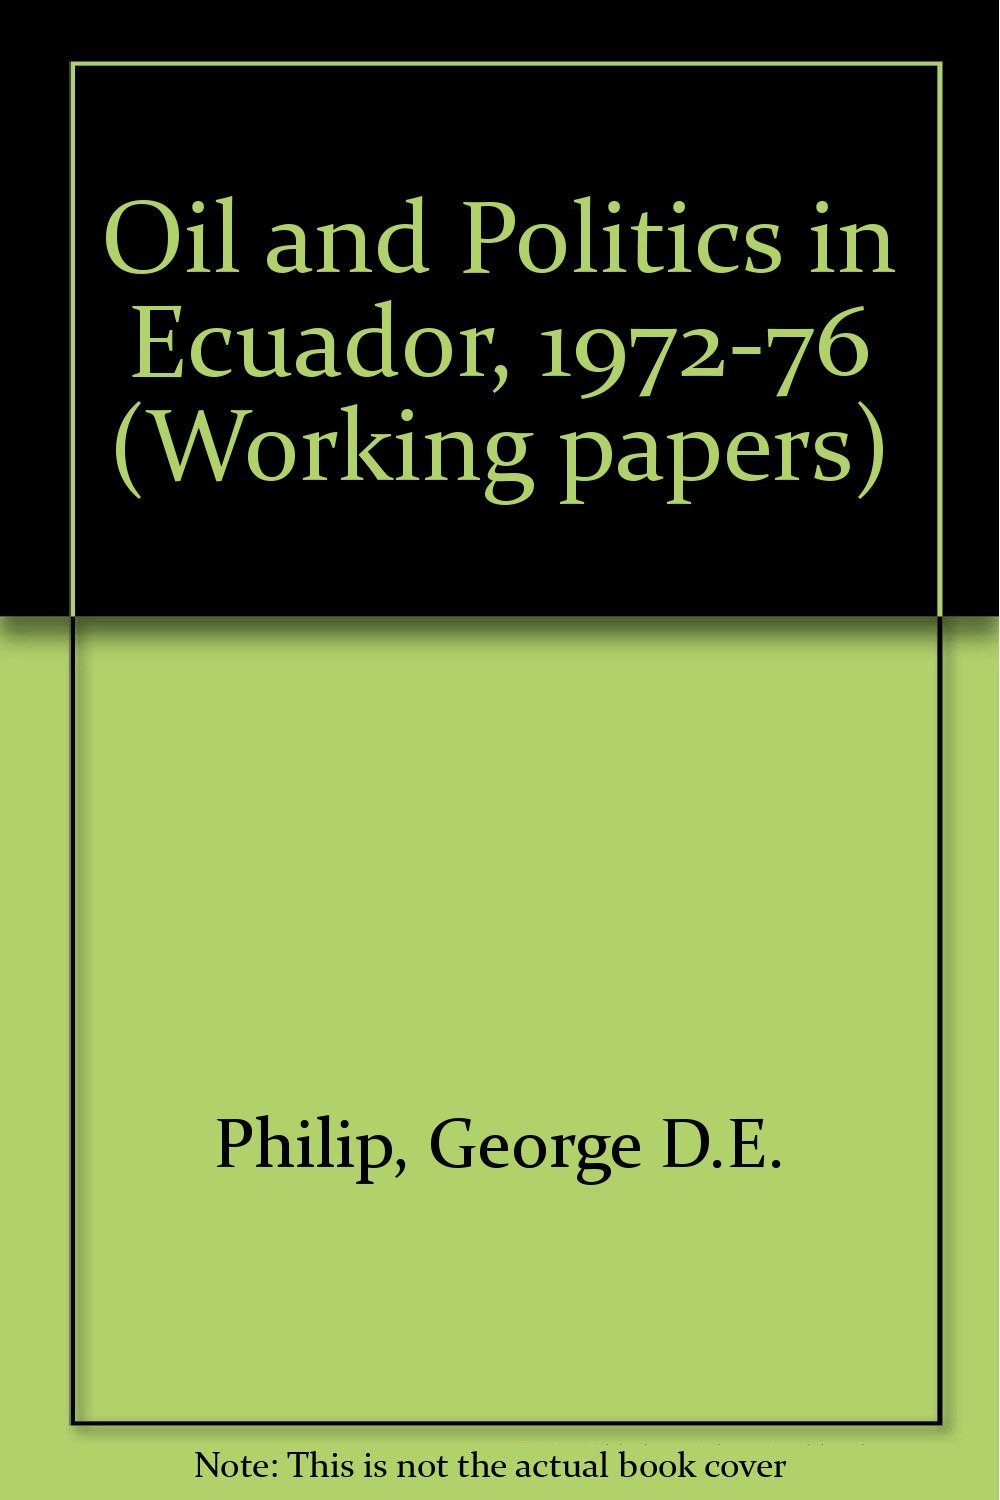 Oil and Politics in Ecuador, 1972-76 (Working papers)